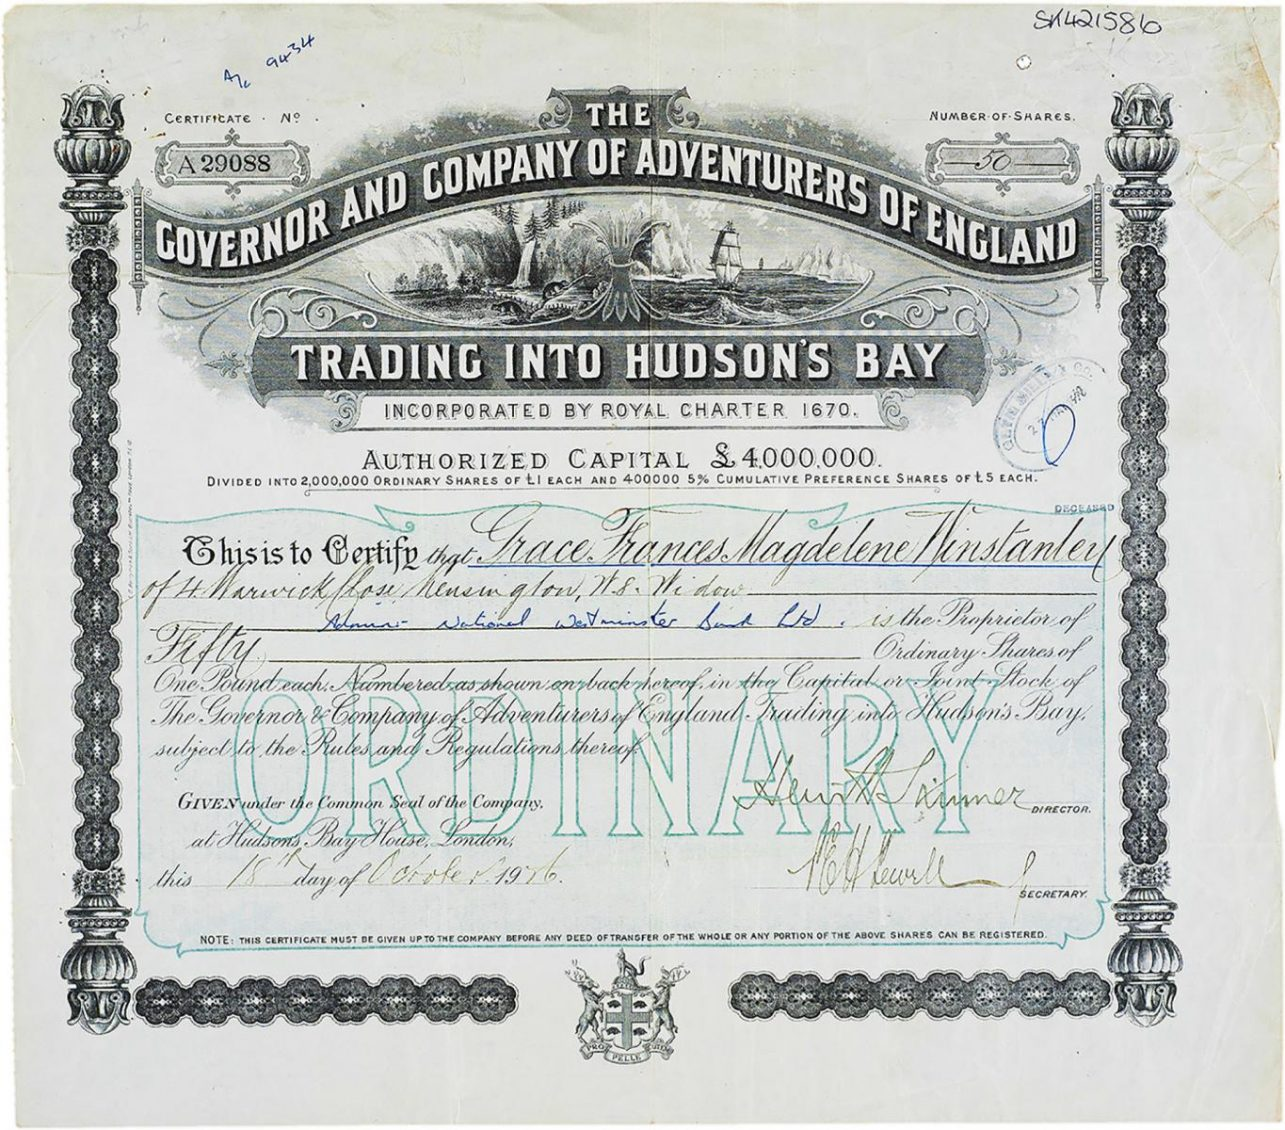 Certificate, black ink, elaborate geometric patterns, illustration of bountiful land and ships on arctic seas.